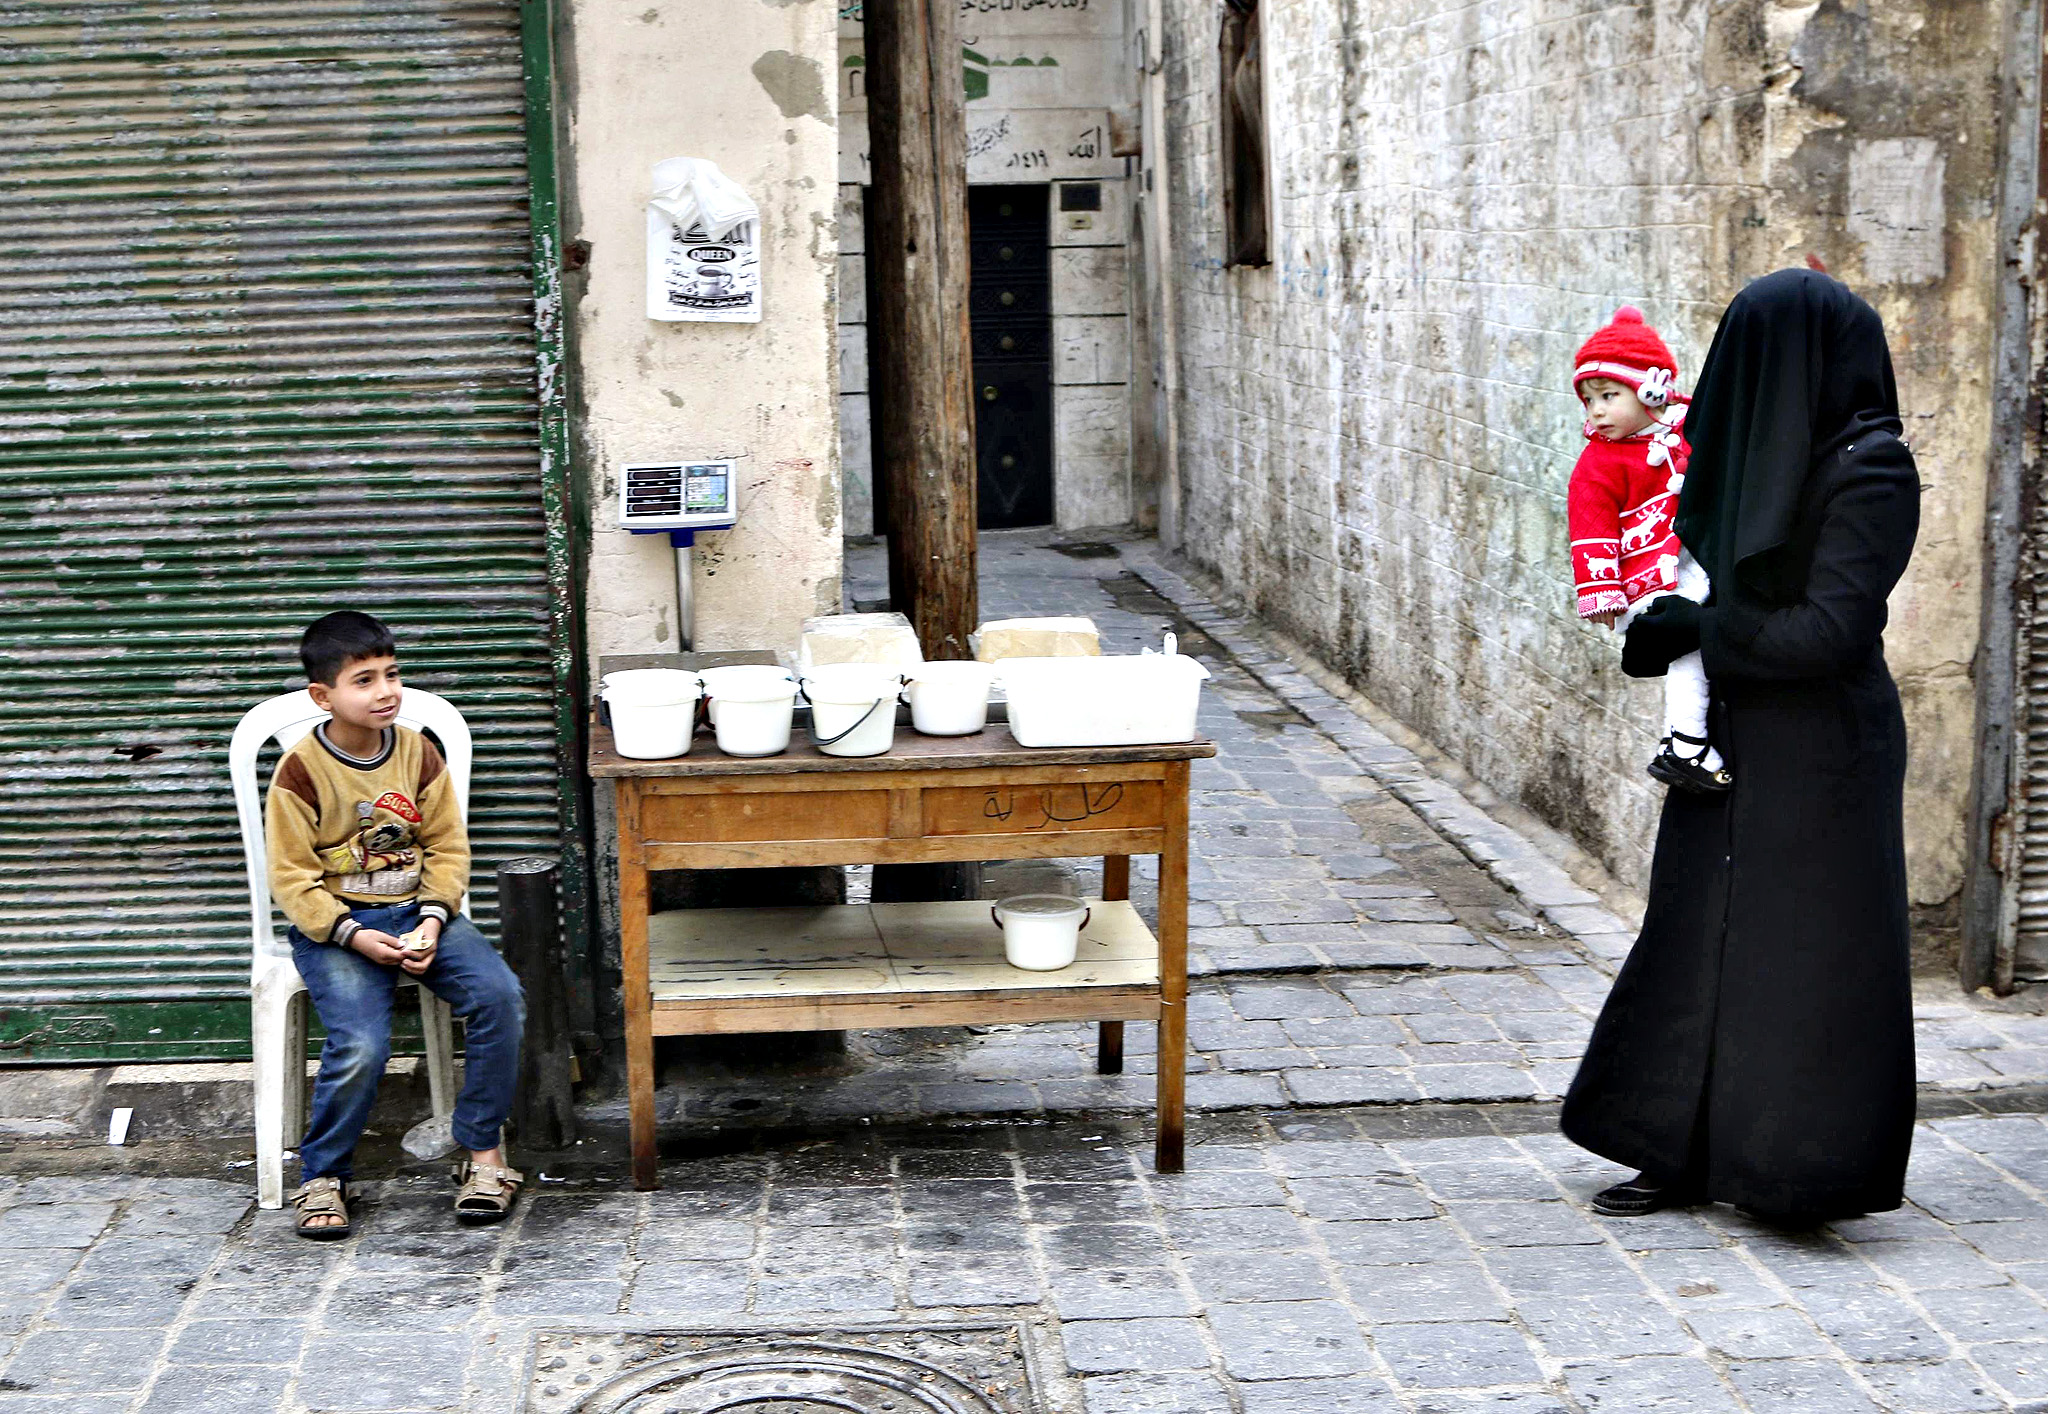 A woman carries a child as she walks past a boy selling yogurt along a street in Aleppo's Bab al-Hadeed district December 10, 2014.